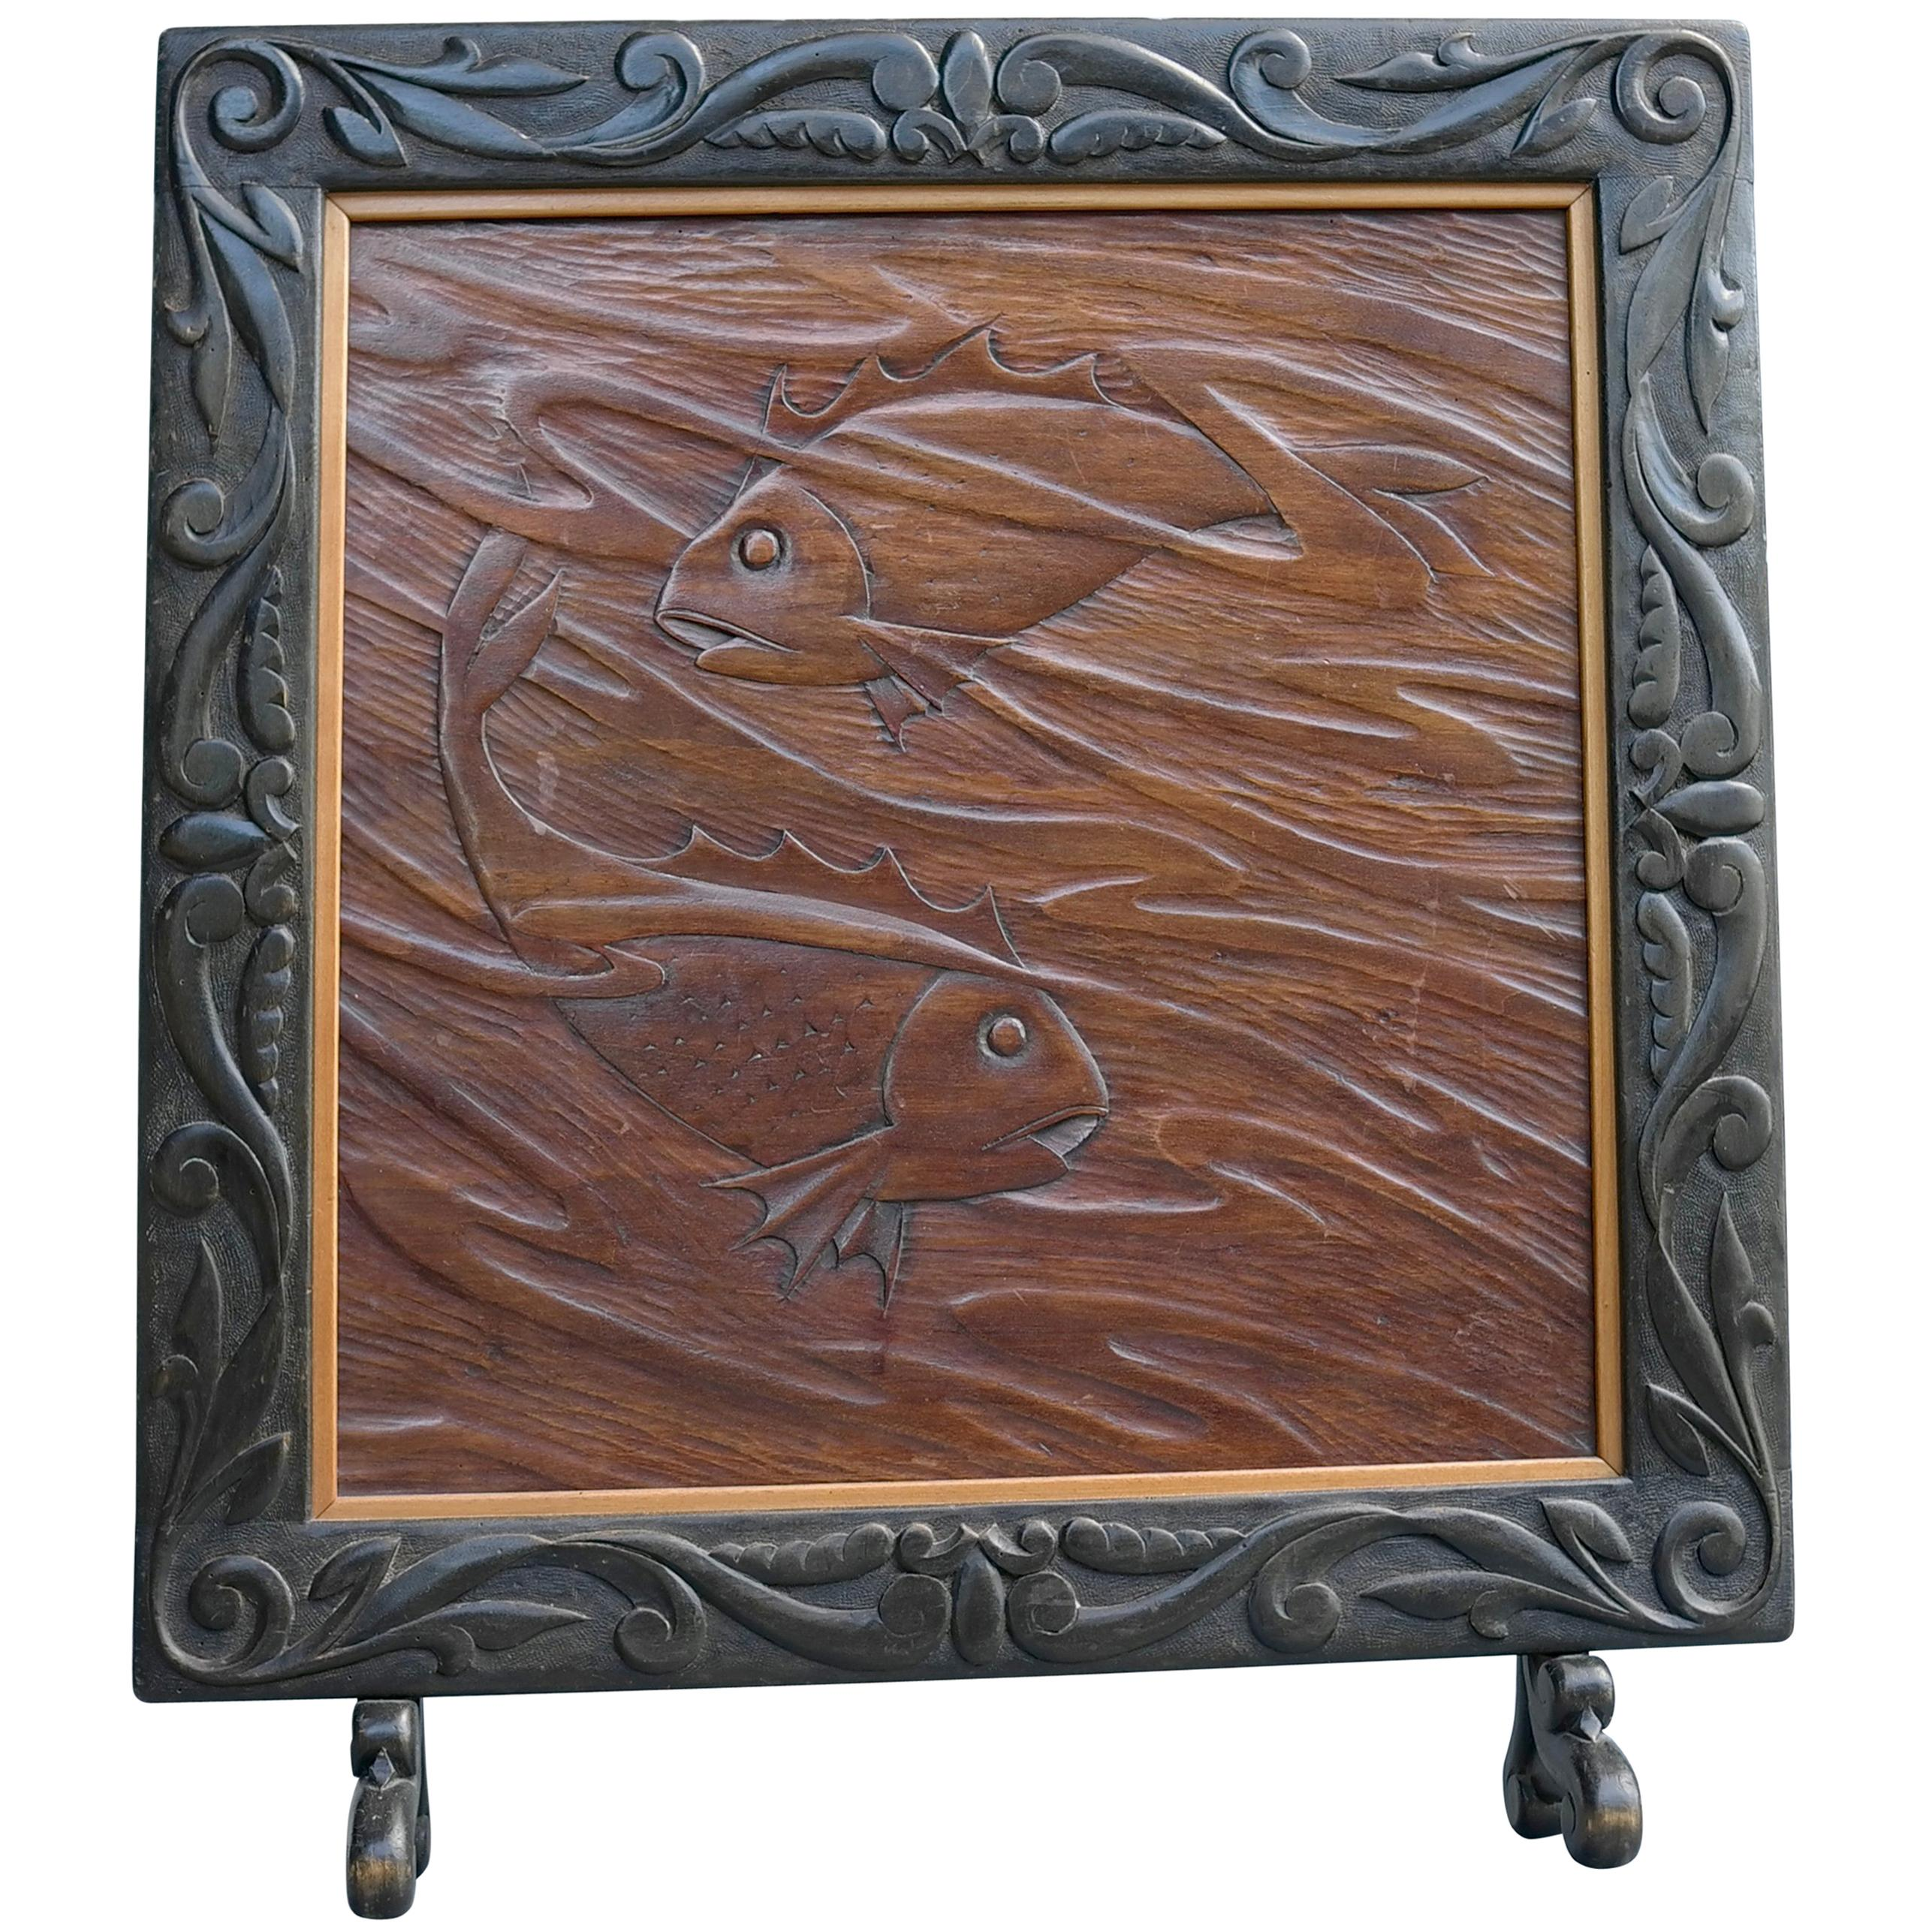 Decorative Wooden Screen with Carved Koi Carp Fish, 1940s